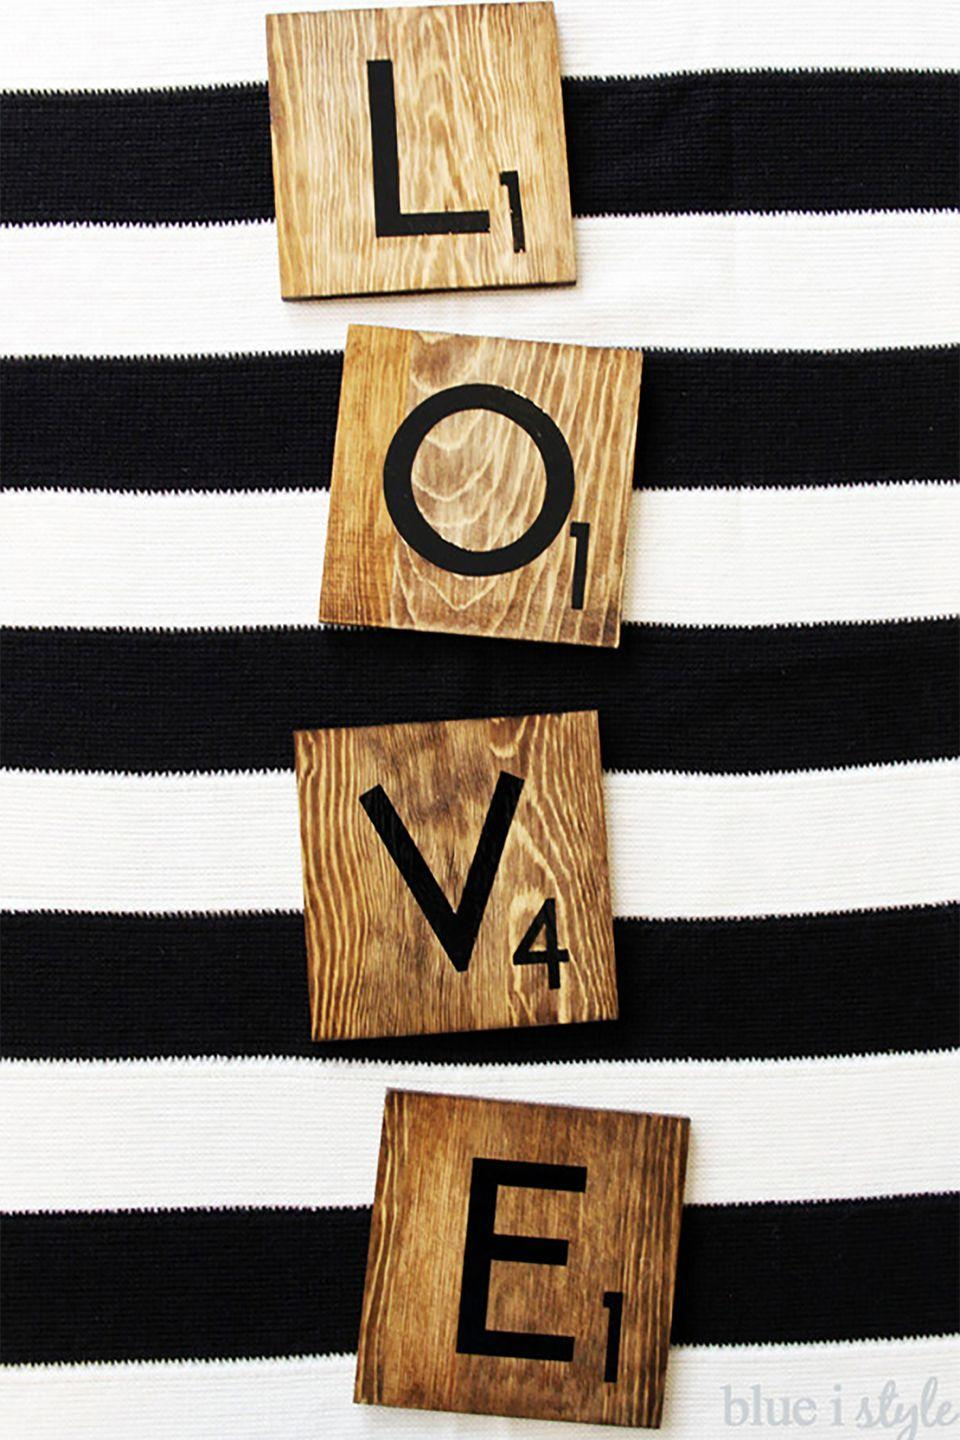 """<p>How do you spell L-O-V-E? With these giant Scrabble coasters. Use a stain marker to get the depth of color and texture on the wood pieces. </p><p><strong>Get the tutorial at <a href=""""http://www.blueistyleblog.com/2015/01/ValentinesScrabbleLoveCoasters.html"""" rel=""""nofollow noopener"""" target=""""_blank"""" data-ylk=""""slk:Blue I Style"""" class=""""link rapid-noclick-resp"""">Blue I Style</a>.</strong> </p><p><strong><a class=""""link rapid-noclick-resp"""" href=""""https://www.amazon.com/Unfinished-Square-Crafting-Altered-Embellishing/dp/B00DC1WQQA/?tag=syn-yahoo-20&ascsubtag=%5Bartid%7C10050.g.2971%5Bsrc%7Cyahoo-us"""" rel=""""nofollow noopener"""" target=""""_blank"""" data-ylk=""""slk:SHOP SQUARES"""">SHOP SQUARES</a><br></strong></p>"""